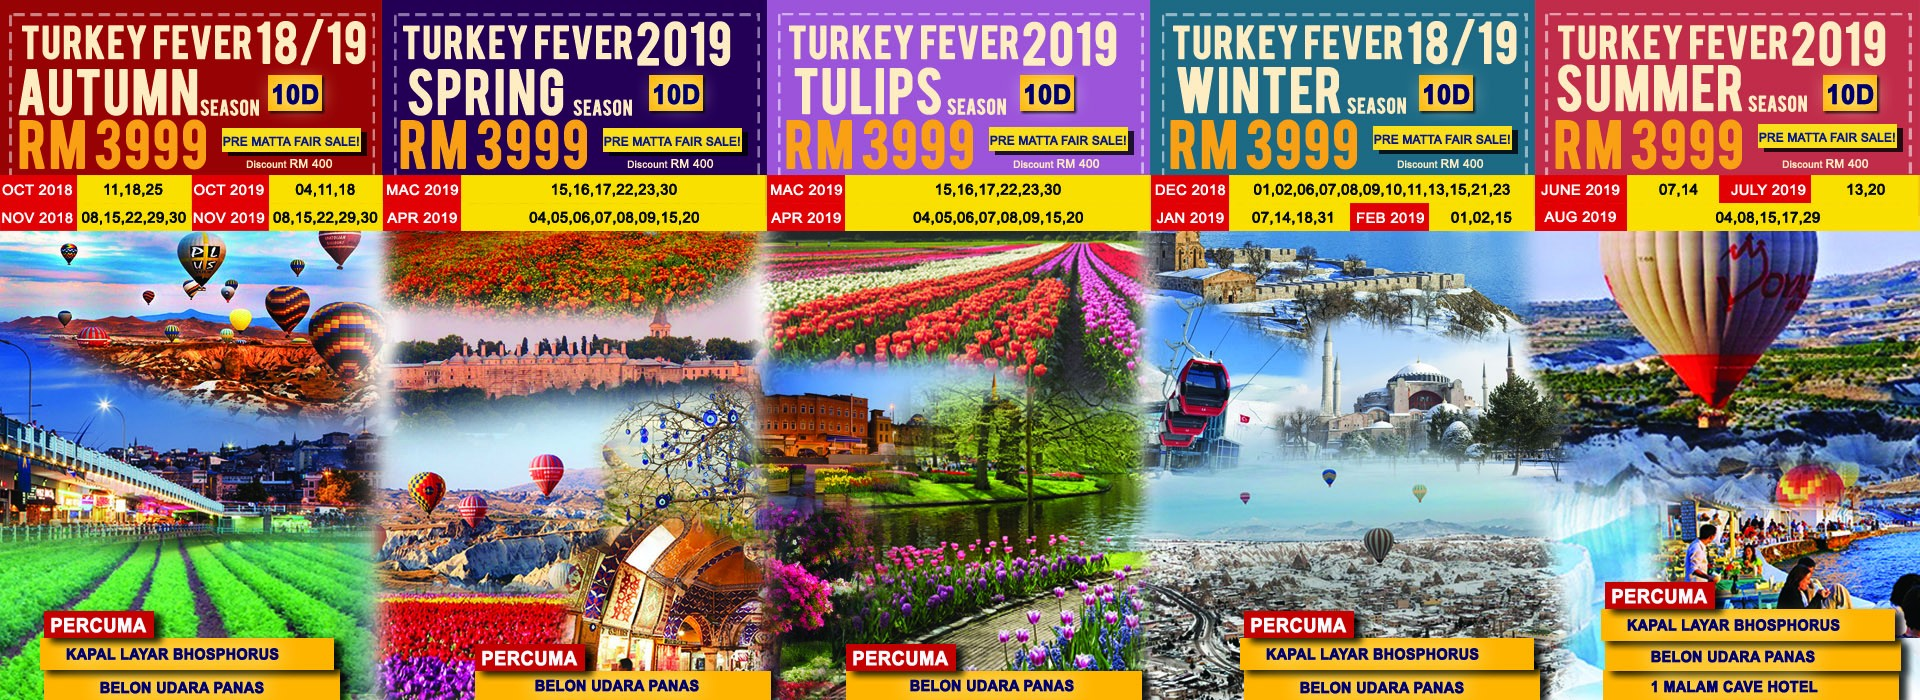 Turkey 2017 Matta Fair Promo